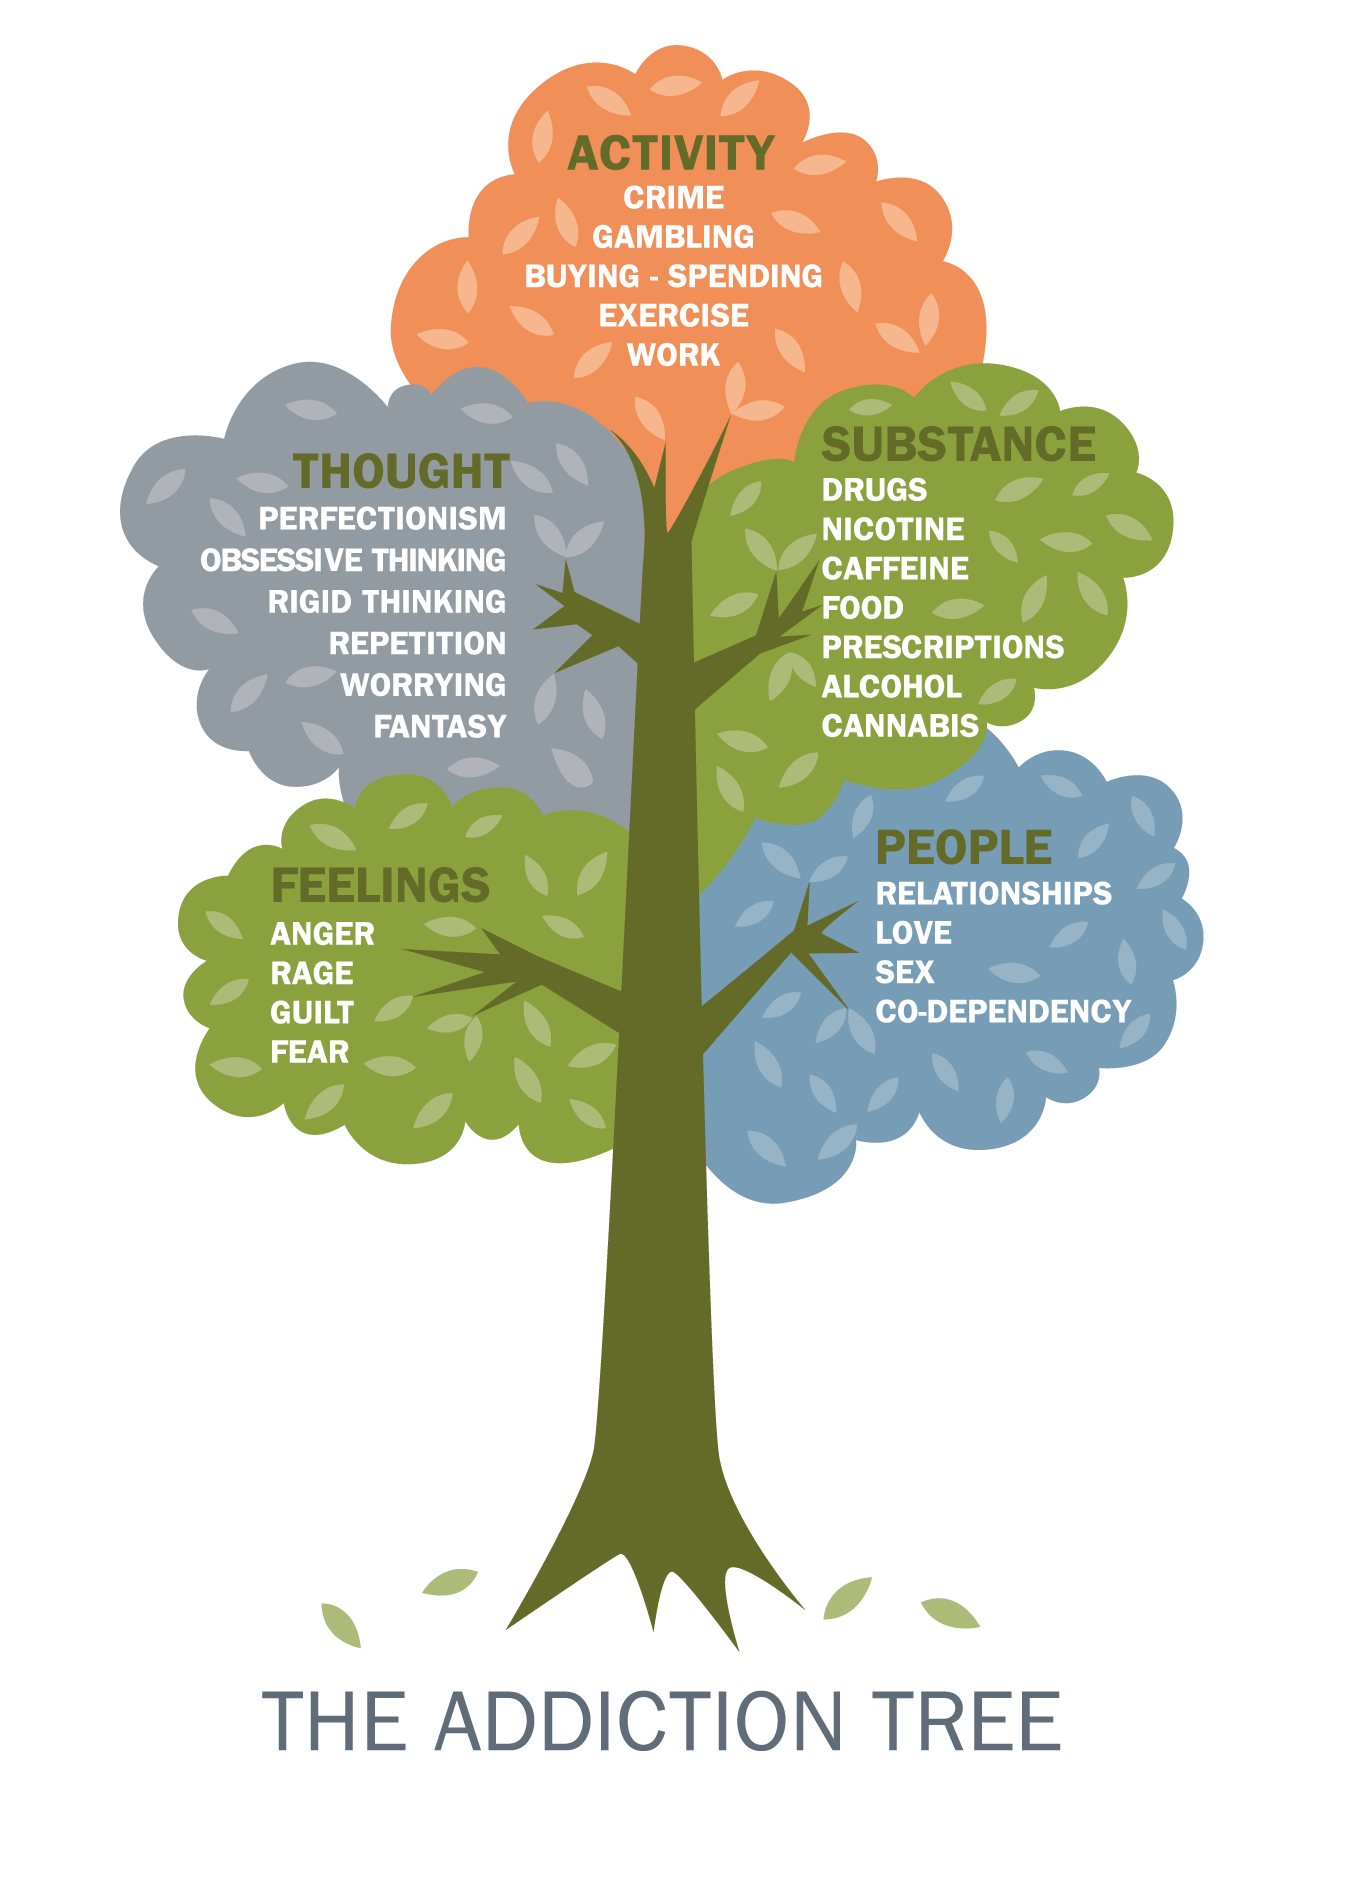 The Recovery Tree: Well-Being, Support, Hope, Resiliency, Responsibility, Purpose, Self-Determination, Motivation, Spirituality, Sense of Self, Respect, Potential, Knowledge